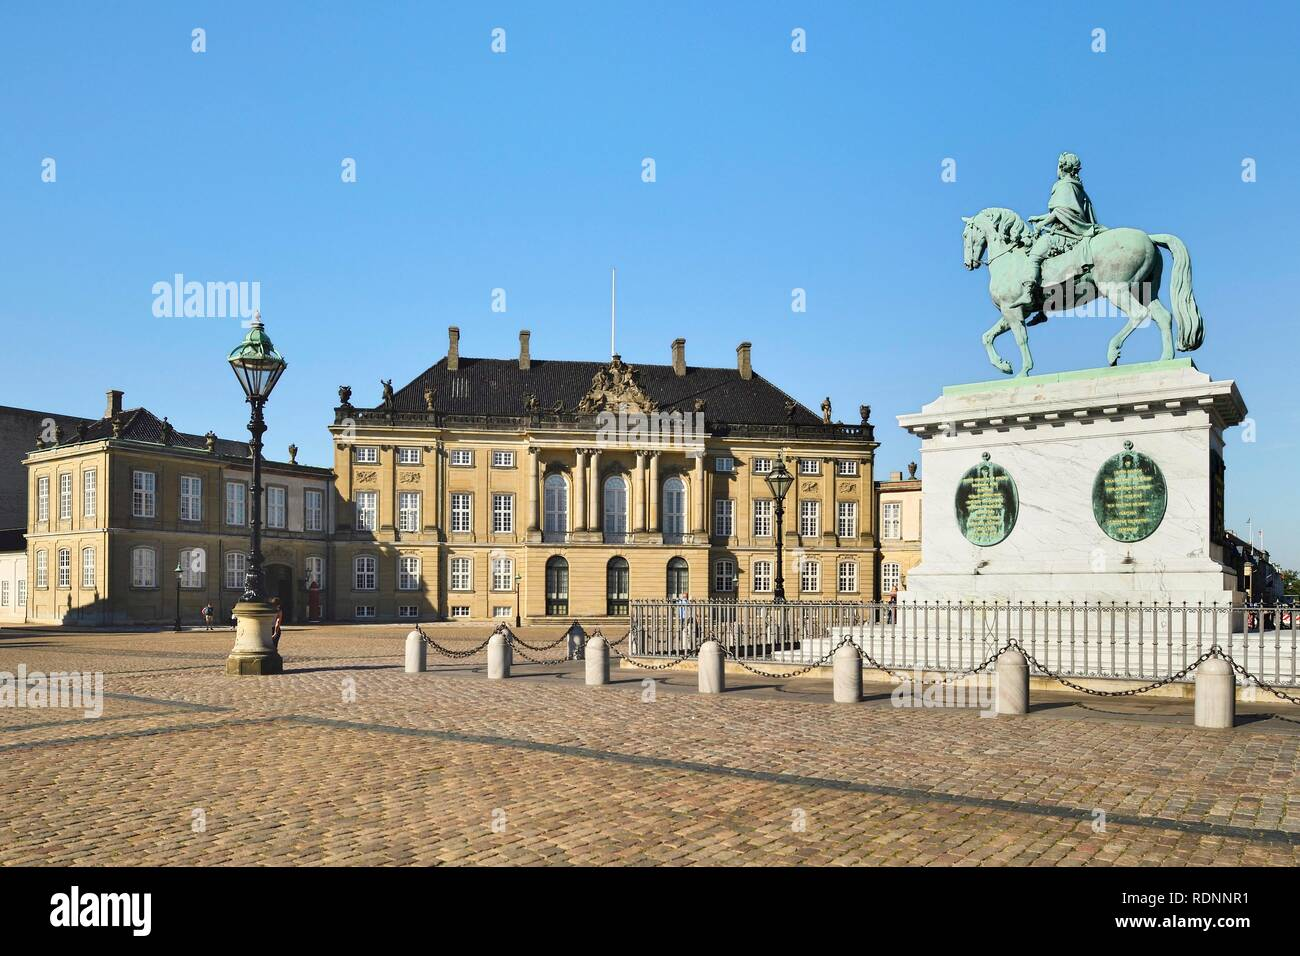 Frederik V's equestrian statue in front of Amalienborg Castle, Copenhagen, Denmark Stock Photo